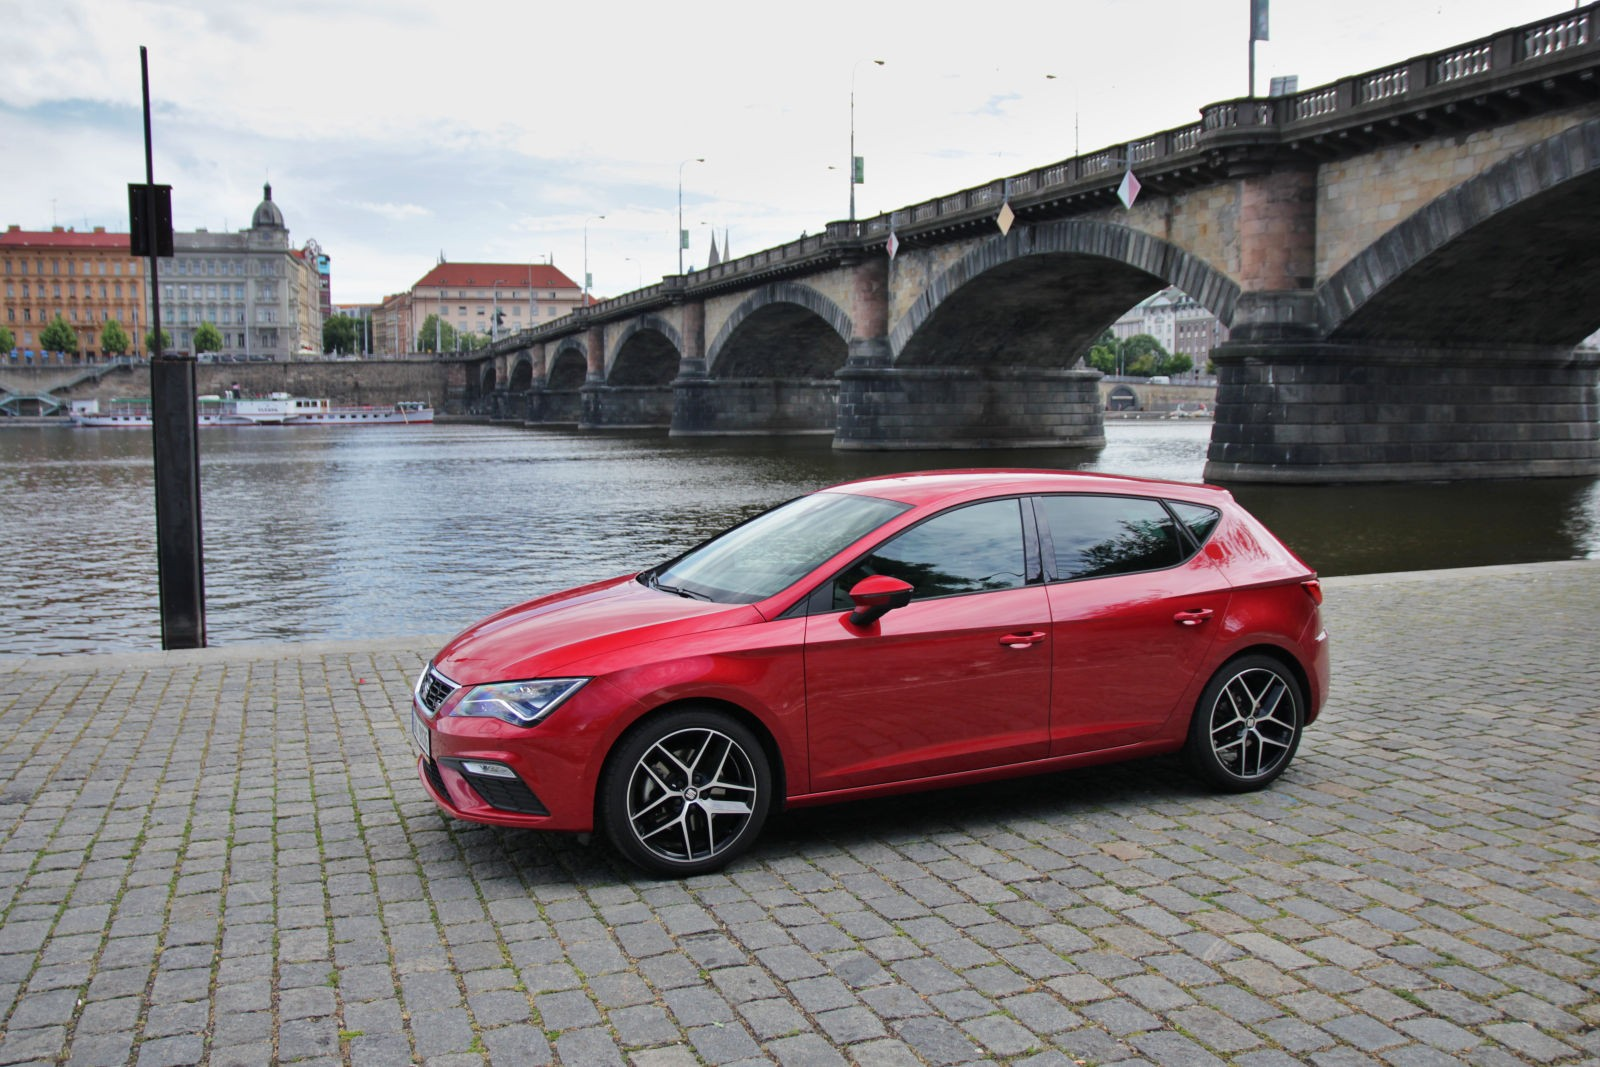 test seat leon fr 1 4 tsi 110 kw act. Black Bedroom Furniture Sets. Home Design Ideas